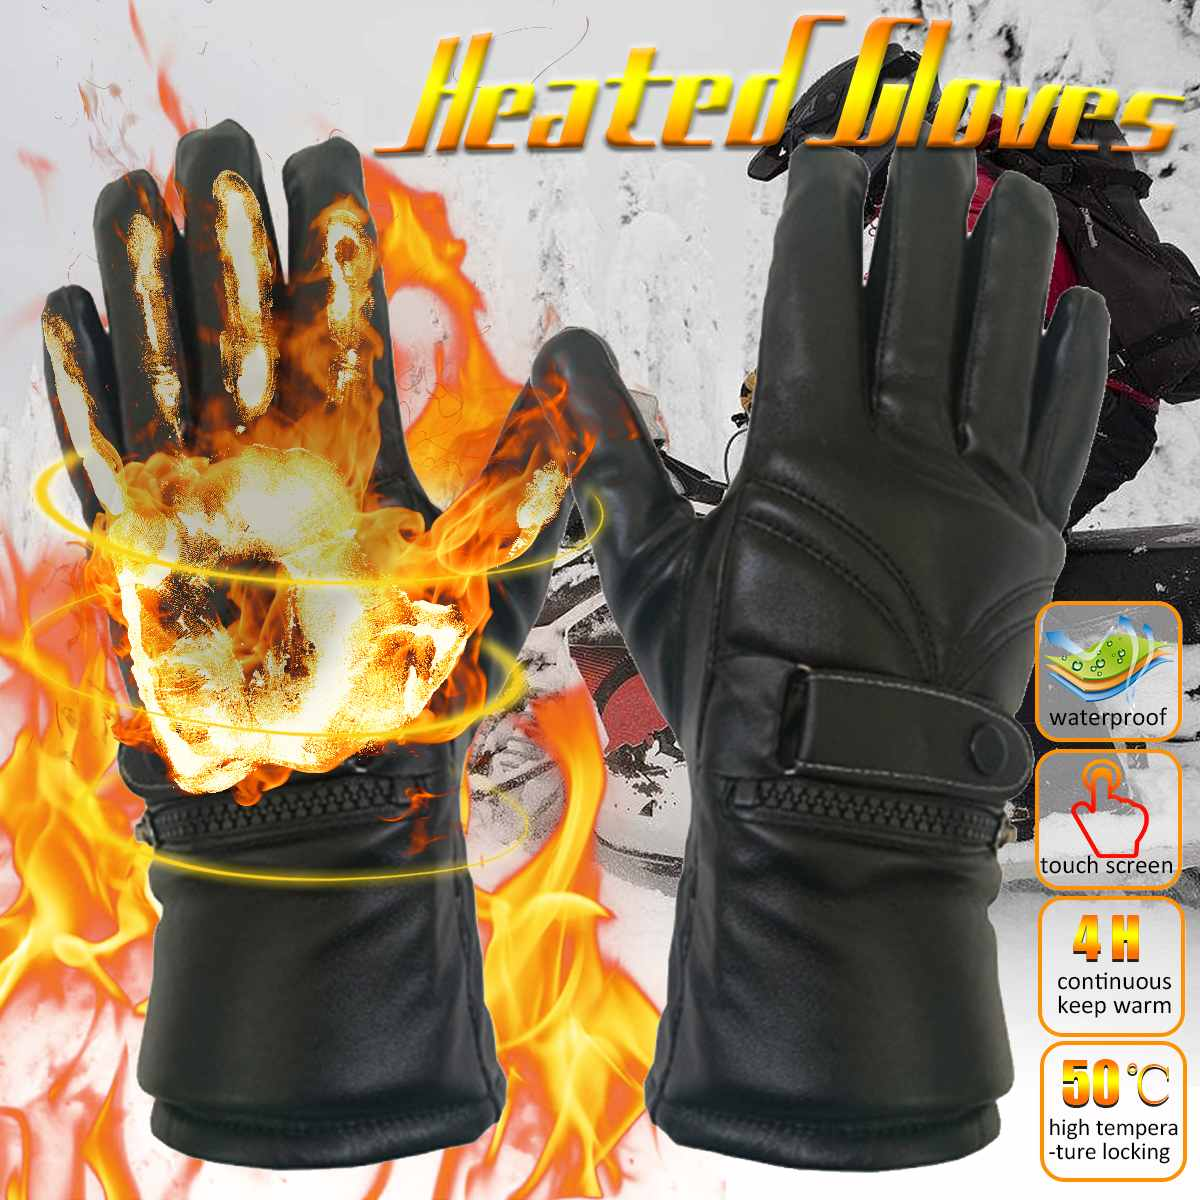 Waterproof Leather Electric Heated Gloves Warmer Hands Screen Winter Outdoor Motorcycle High Temperature Durability GlovesWaterproof Leather Electric Heated Gloves Warmer Hands Screen Winter Outdoor Motorcycle High Temperature Durability Gloves